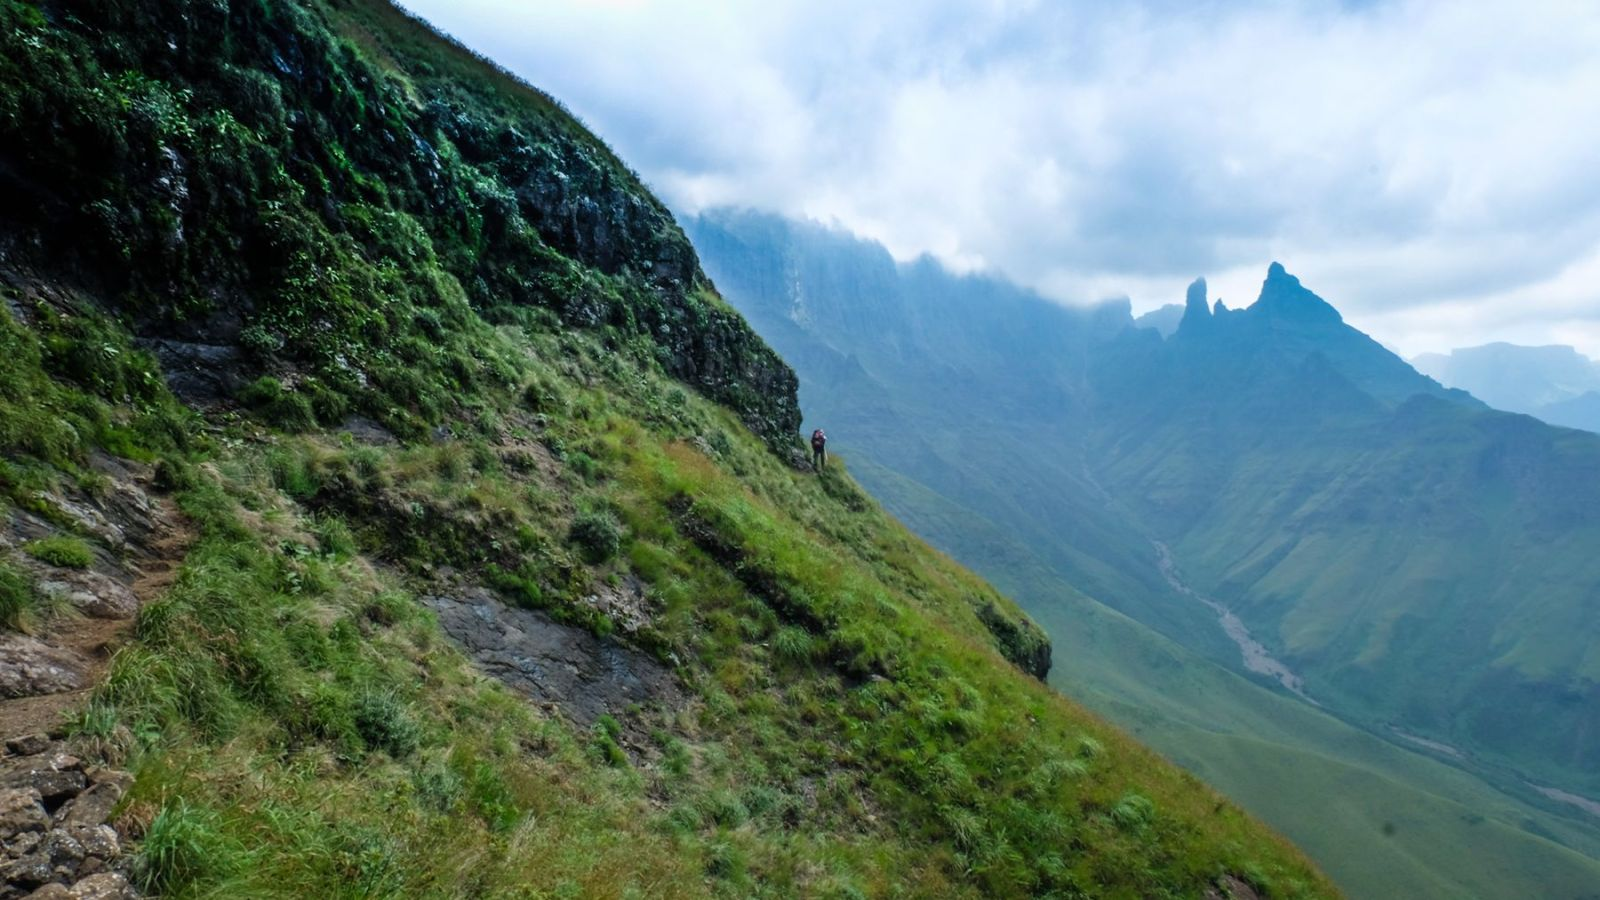 photo from the trail in the drakensberg mountains showing the mountains covered in clouds